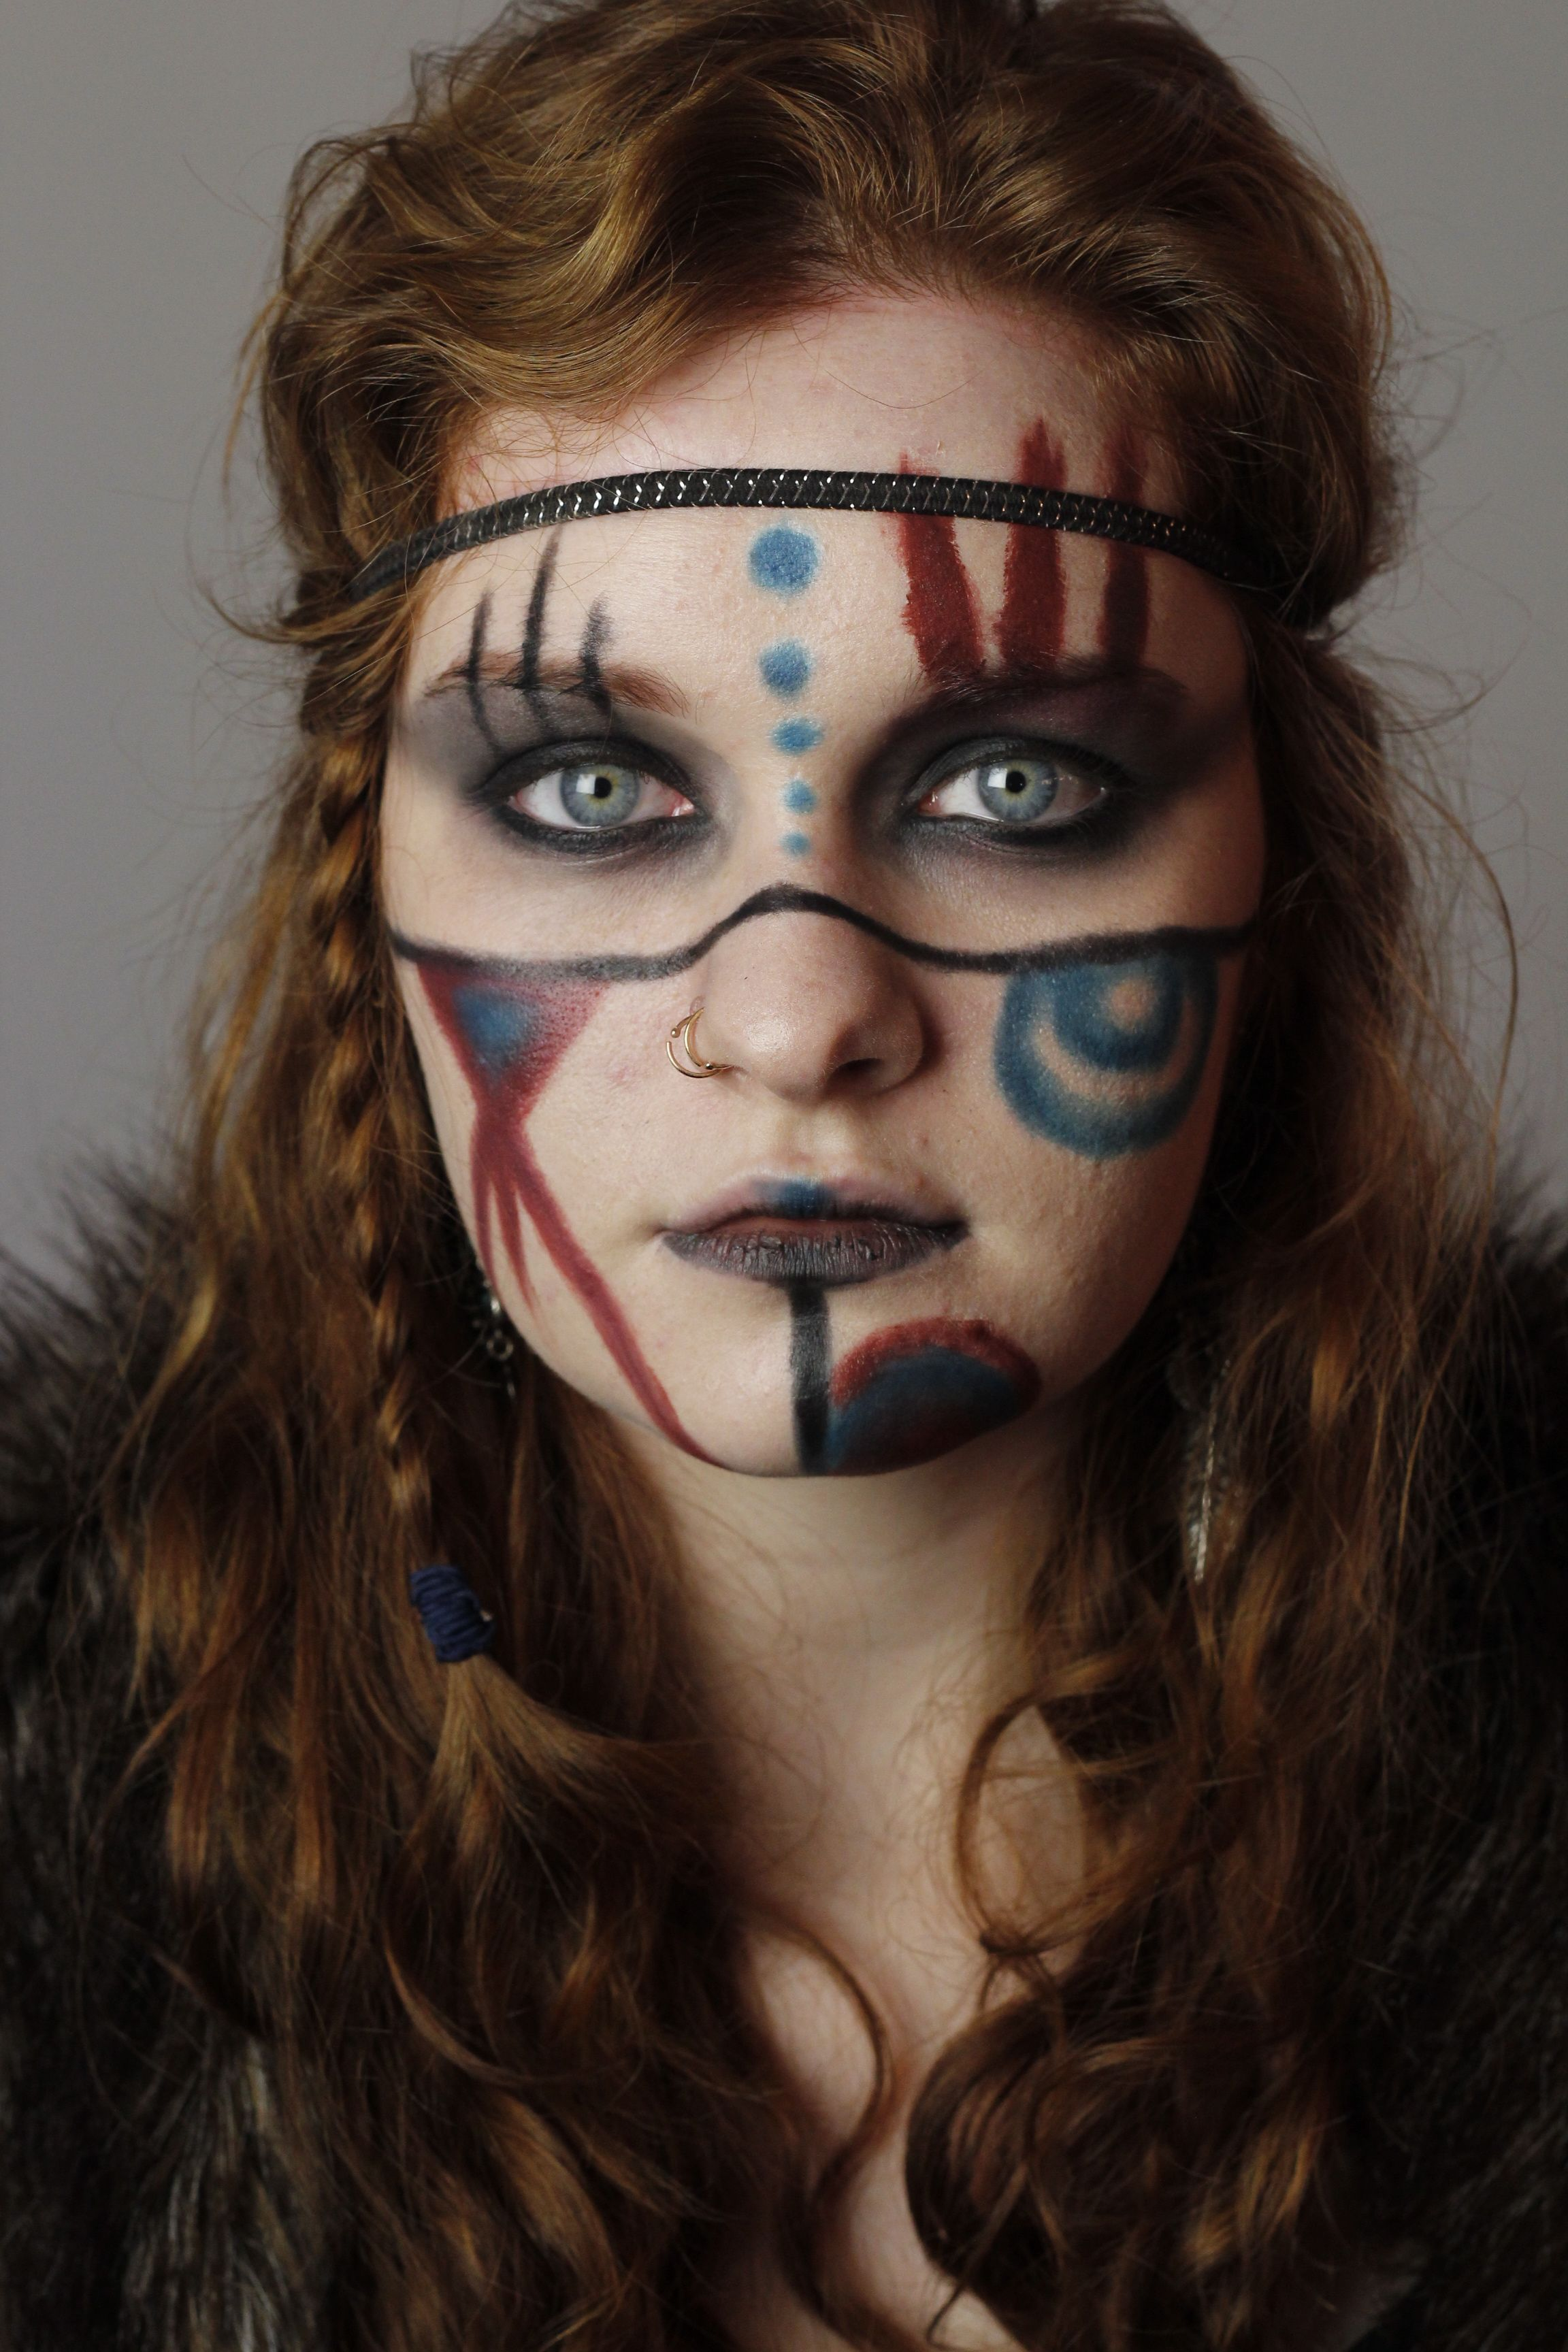 Ethnic makeup, nordic warrior princess